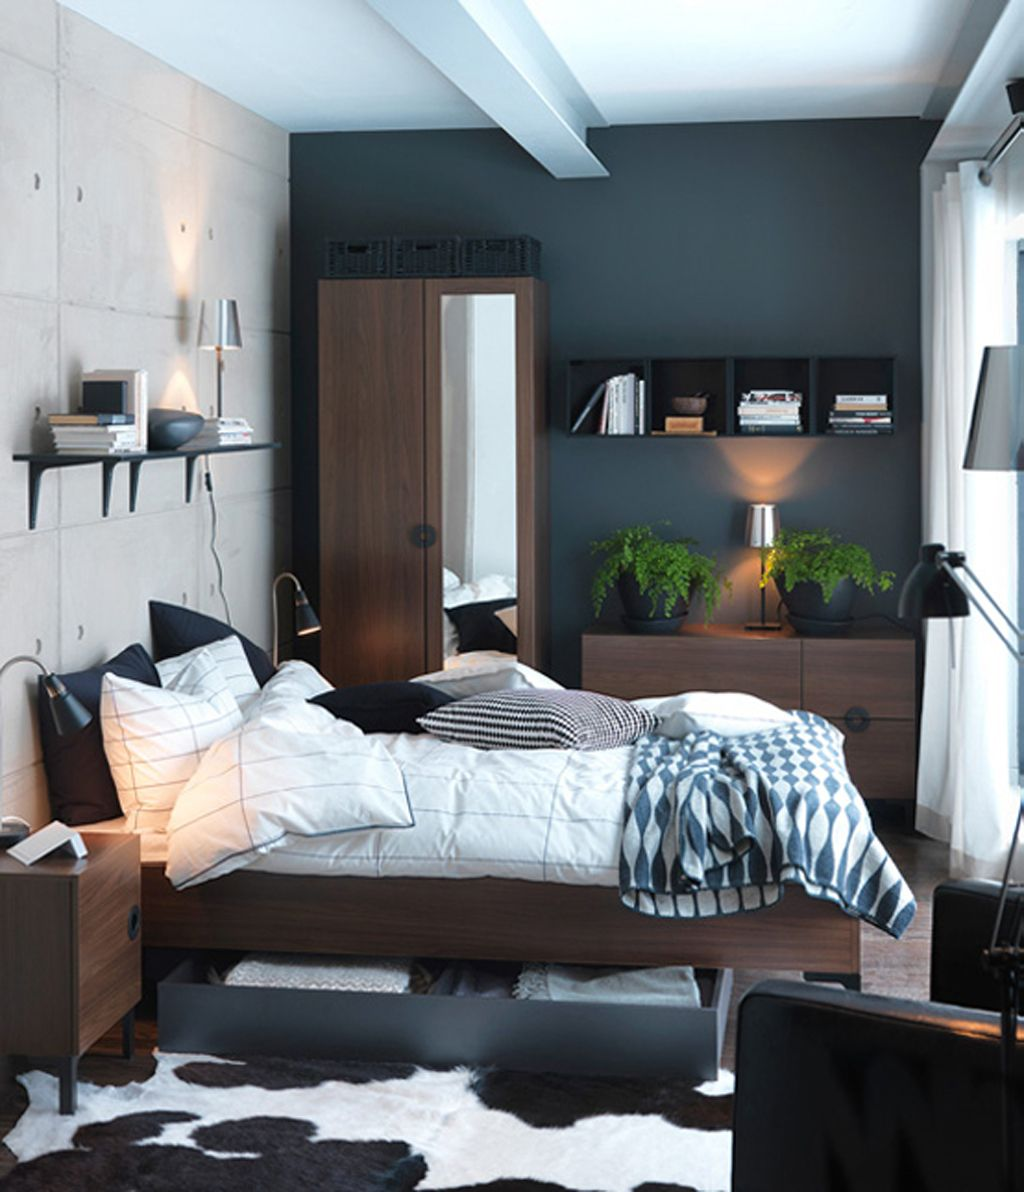 Bedroom Theme Brown, Blue, White, Grey, Hints Of Green And Gold Too Part 61